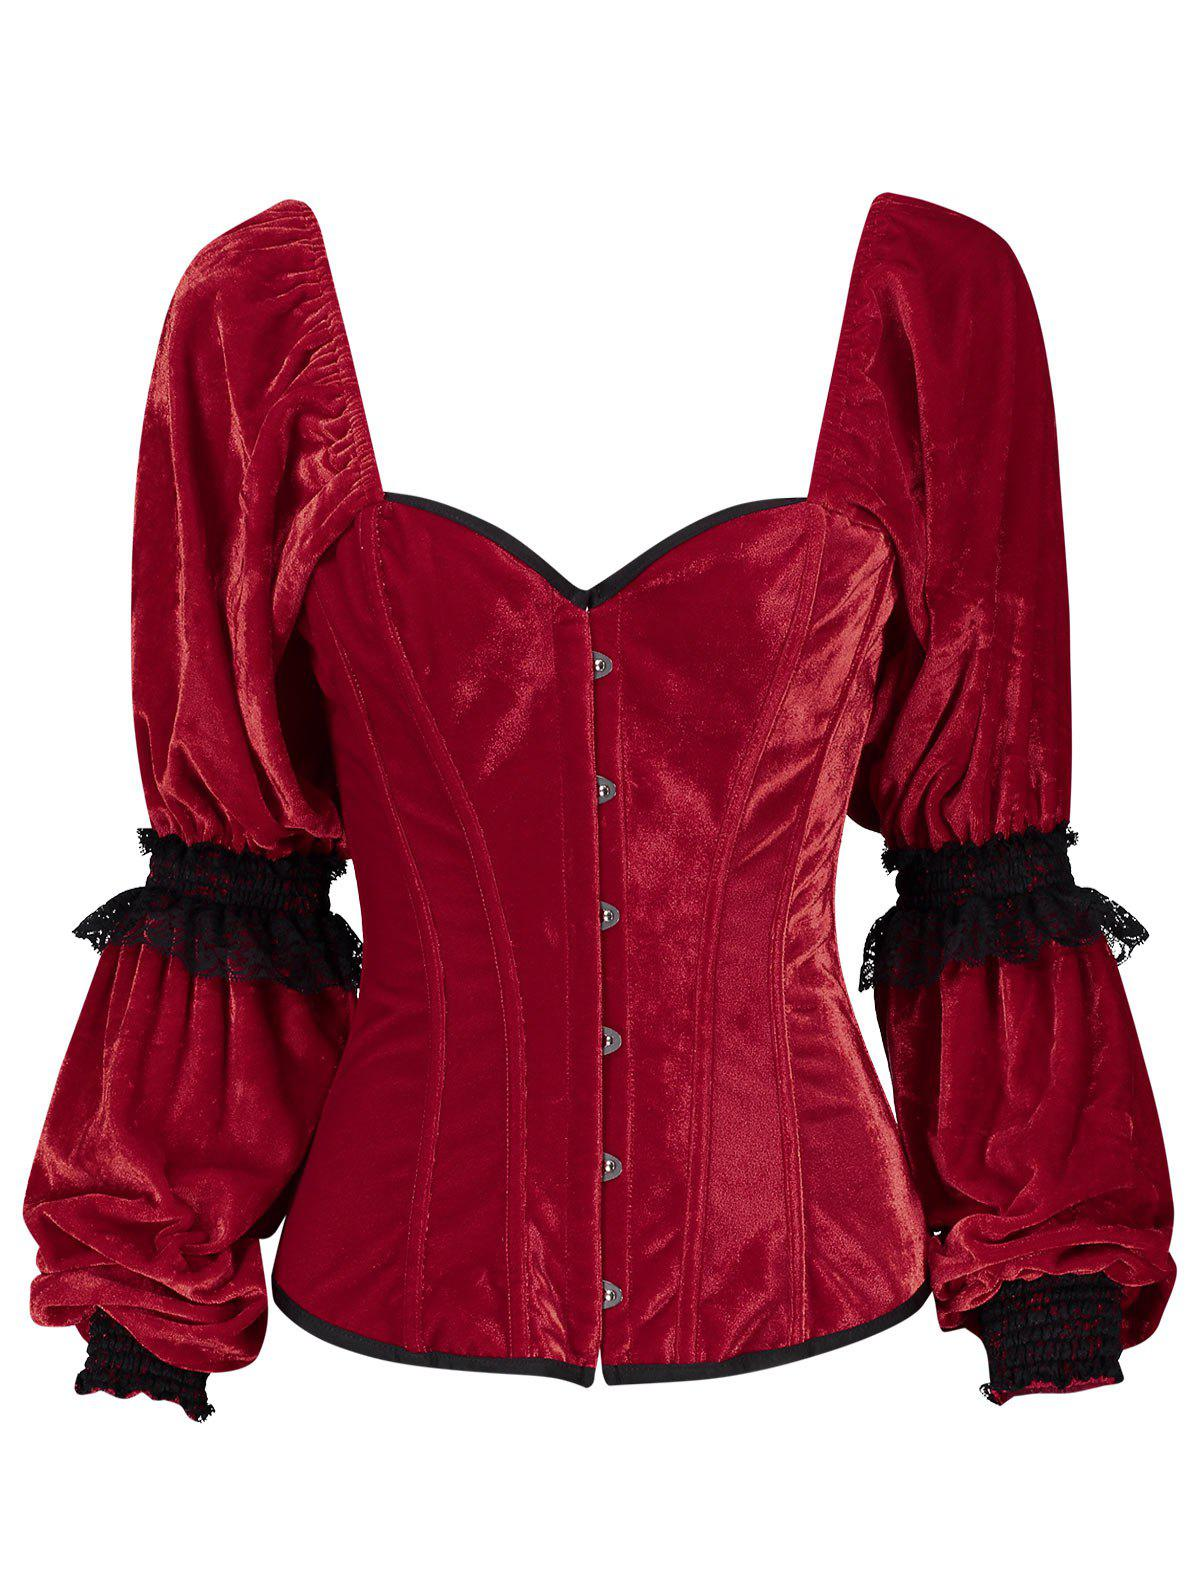 Lantern Sleeve Christmas Velvet CorsetWOMEN<br><br>Size: S; Color: RED; Material: Polyester,Spandex; Fabric Type: Velvet; Pattern Type: Others; Embellishment: Criss-Cross,Lace; Weight: 0.4000kg; Package Contents: 1 x Corset;